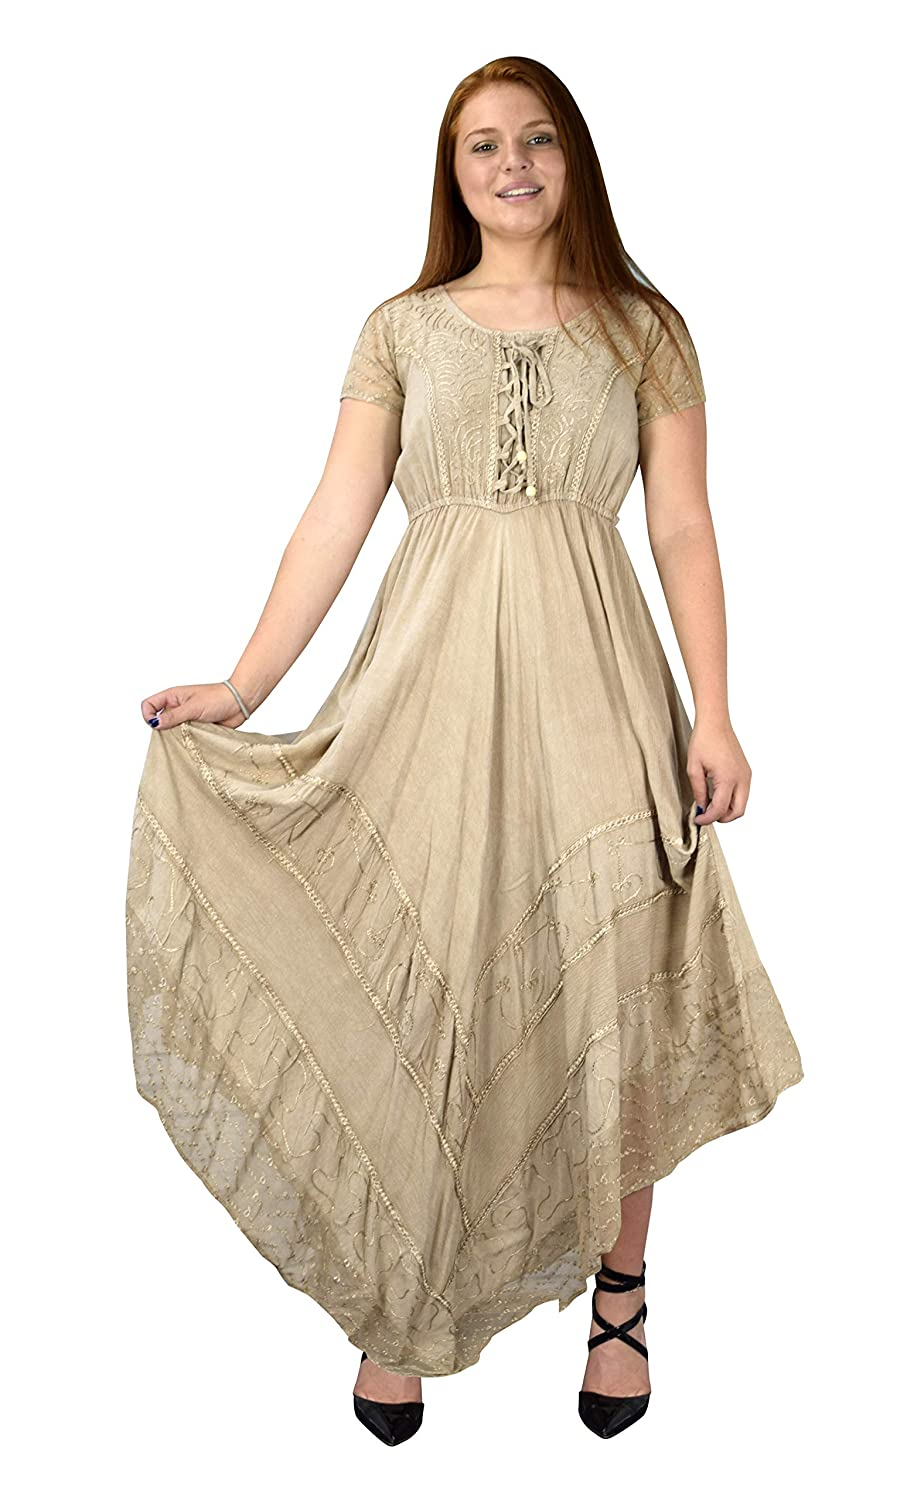 07305d4b4e NEW Exclusive Short Sleeve Trendy Boho Chic Vintage Style Dress with an  elegant handkerchief skirt and embroidered floral design by Peach Couture.